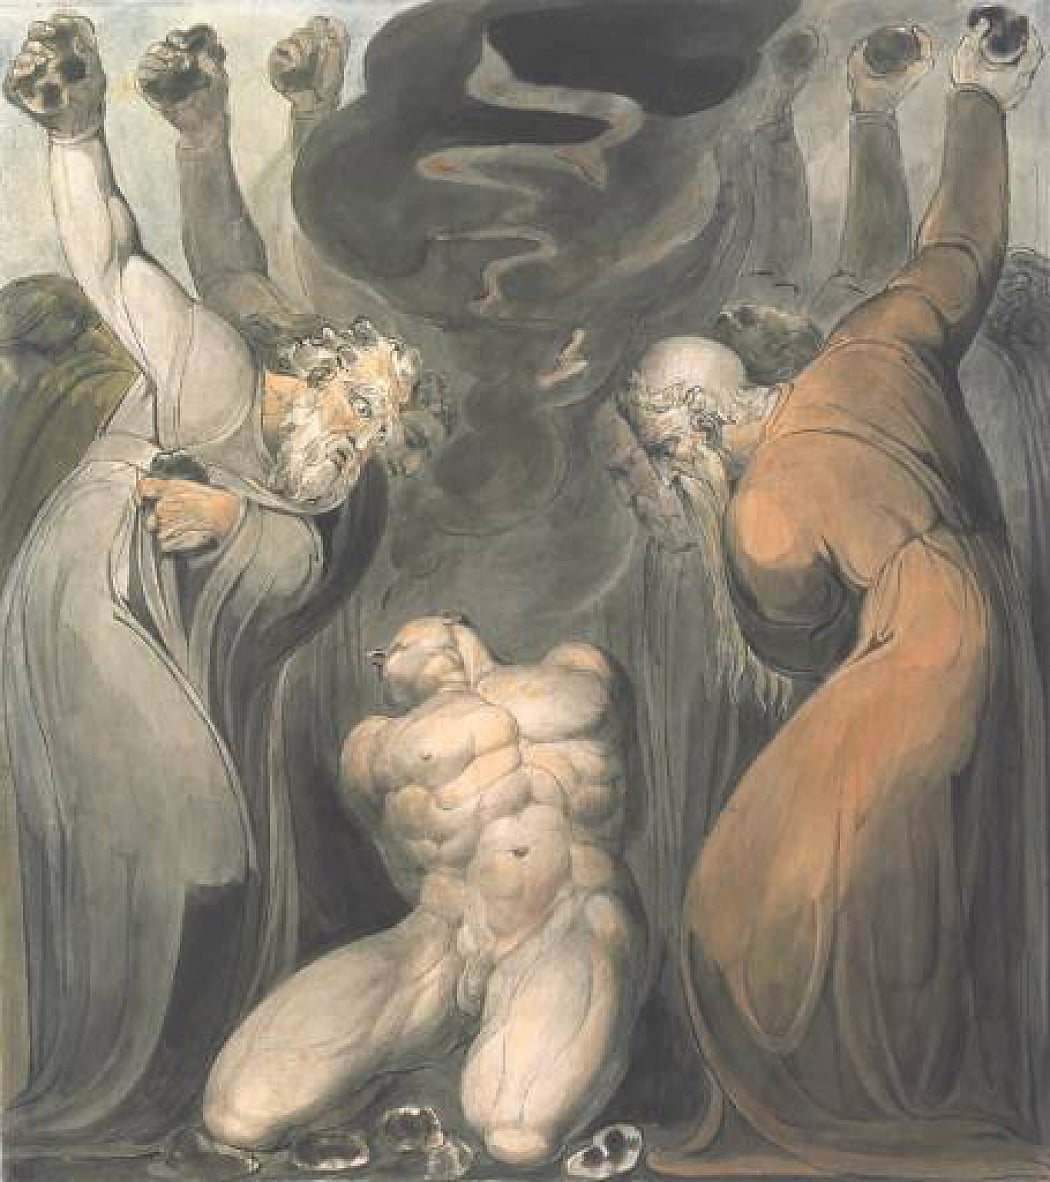 Der Blasphemer von William Blake